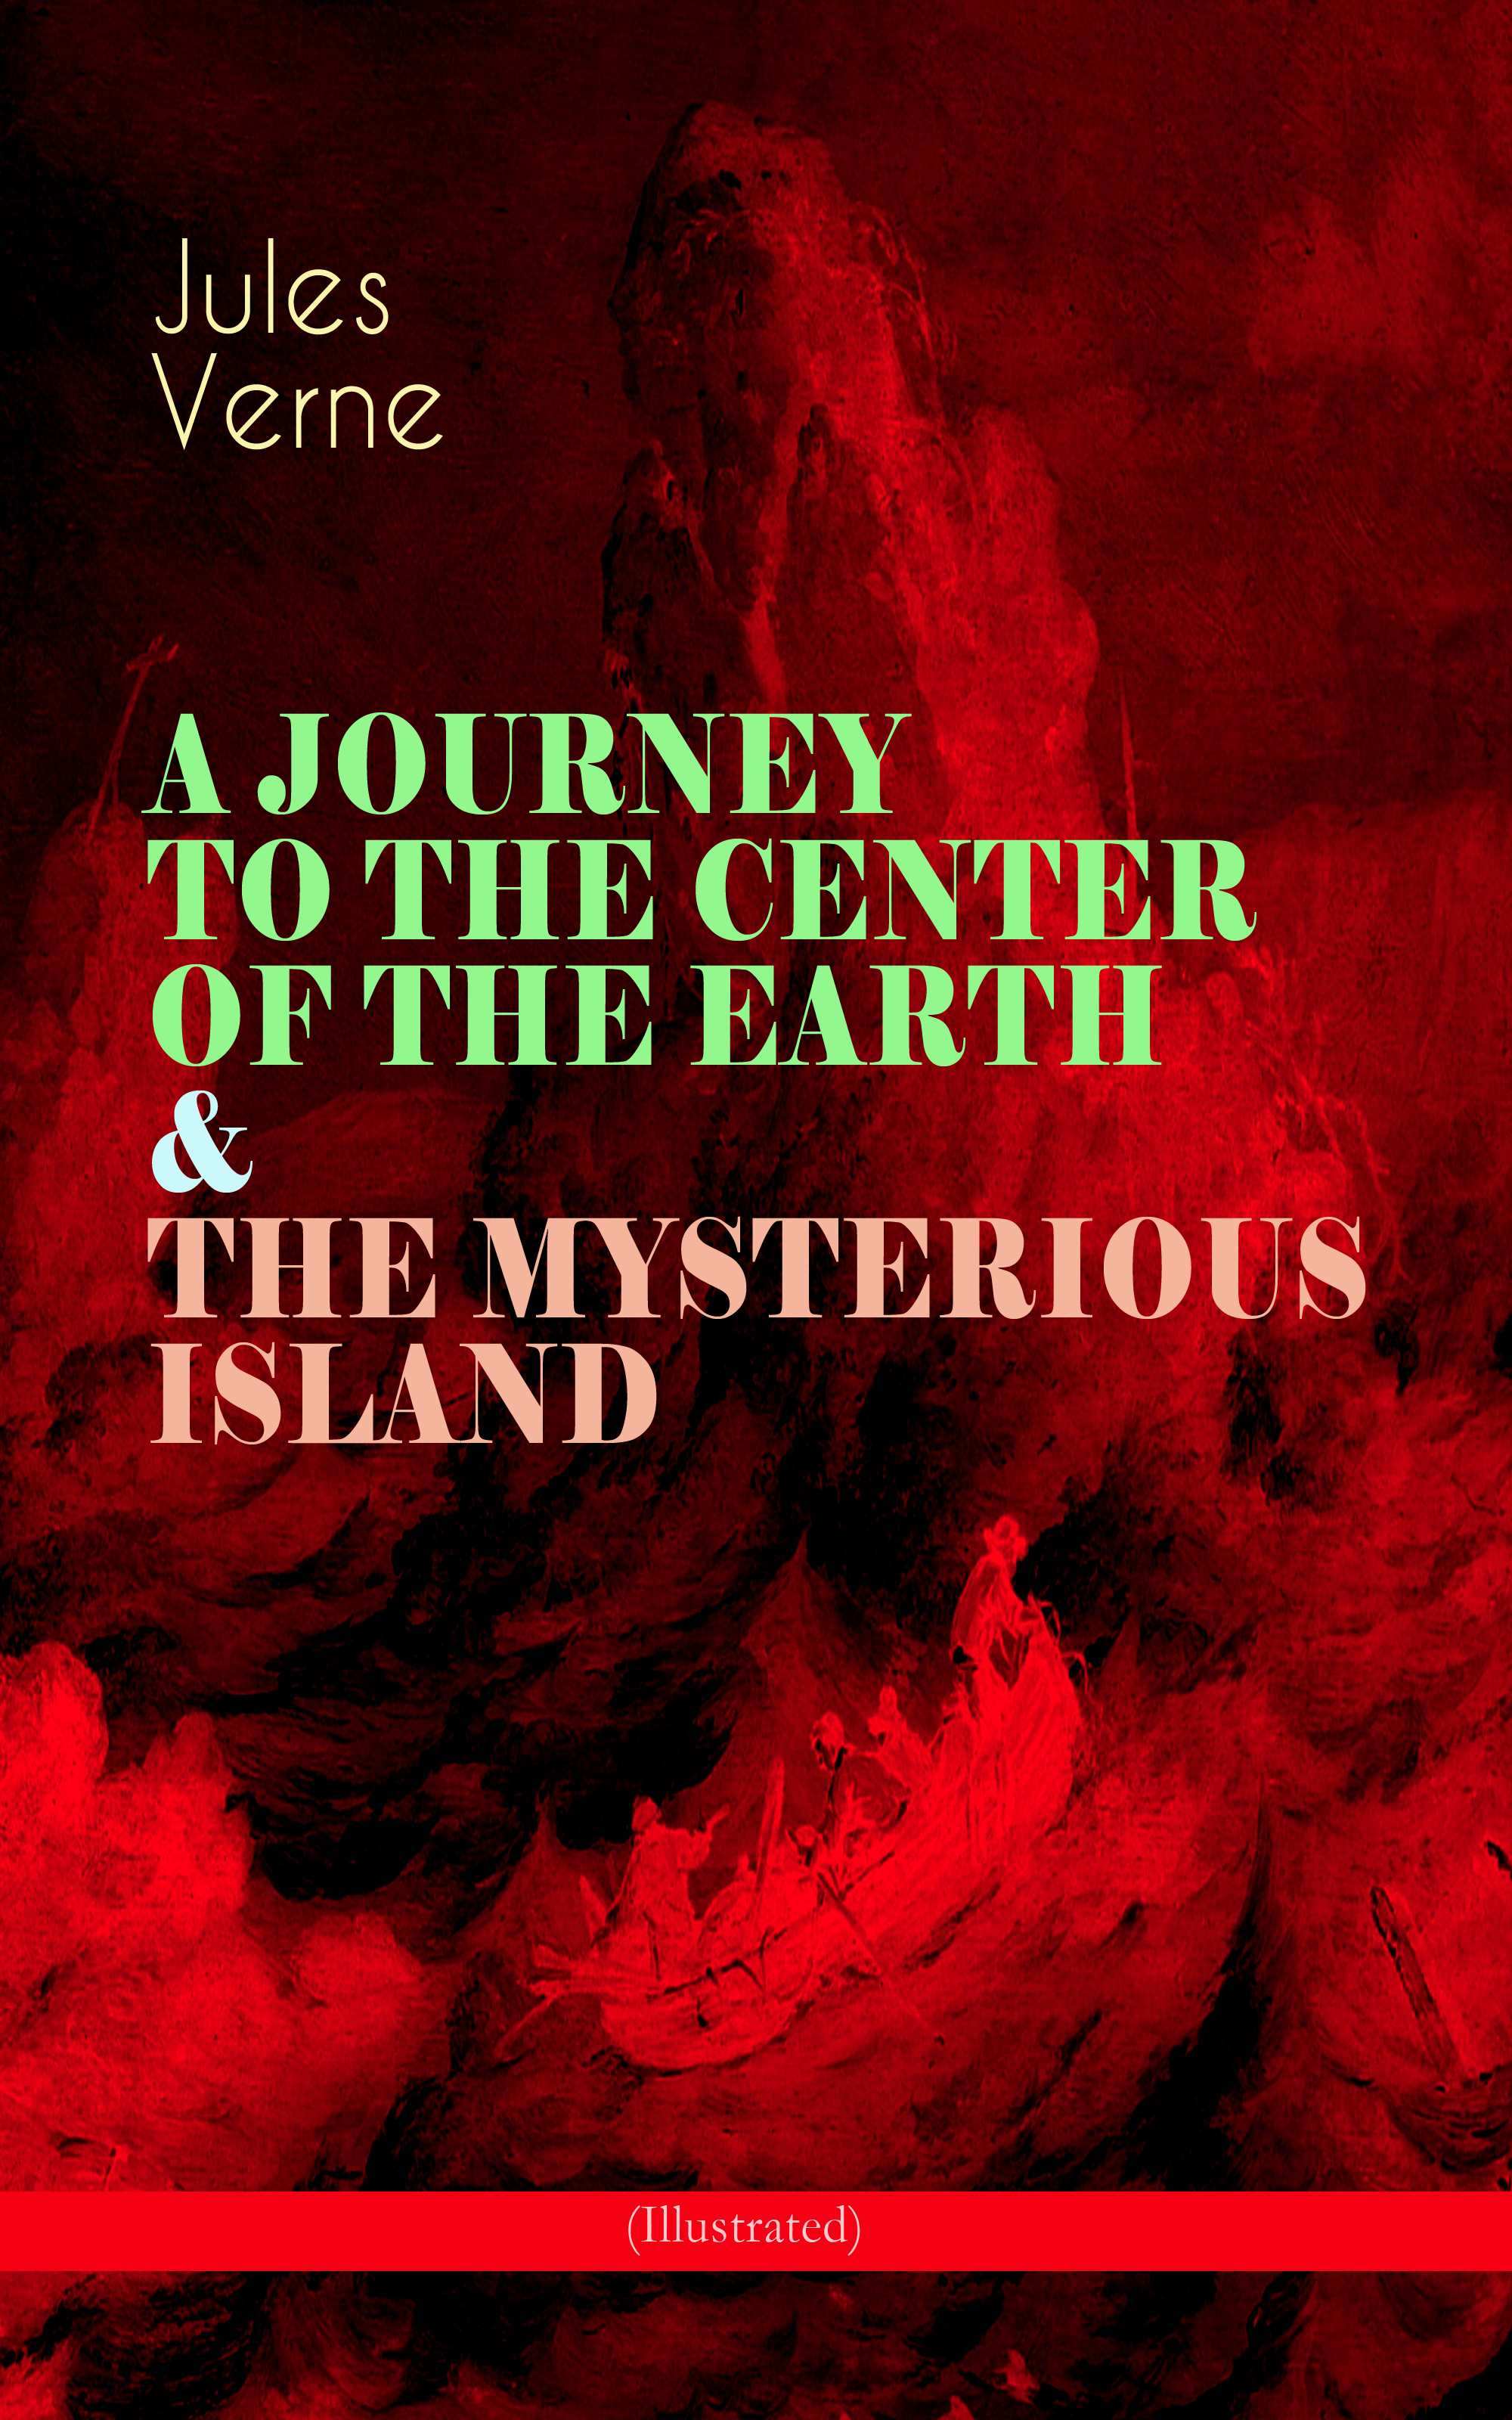 Жюль Верн A JOURNEY TO THE CENTER OF THE EARTH & THE MYSTERIOUS ISLAND (Illustrated) rita dunham a token for the journey